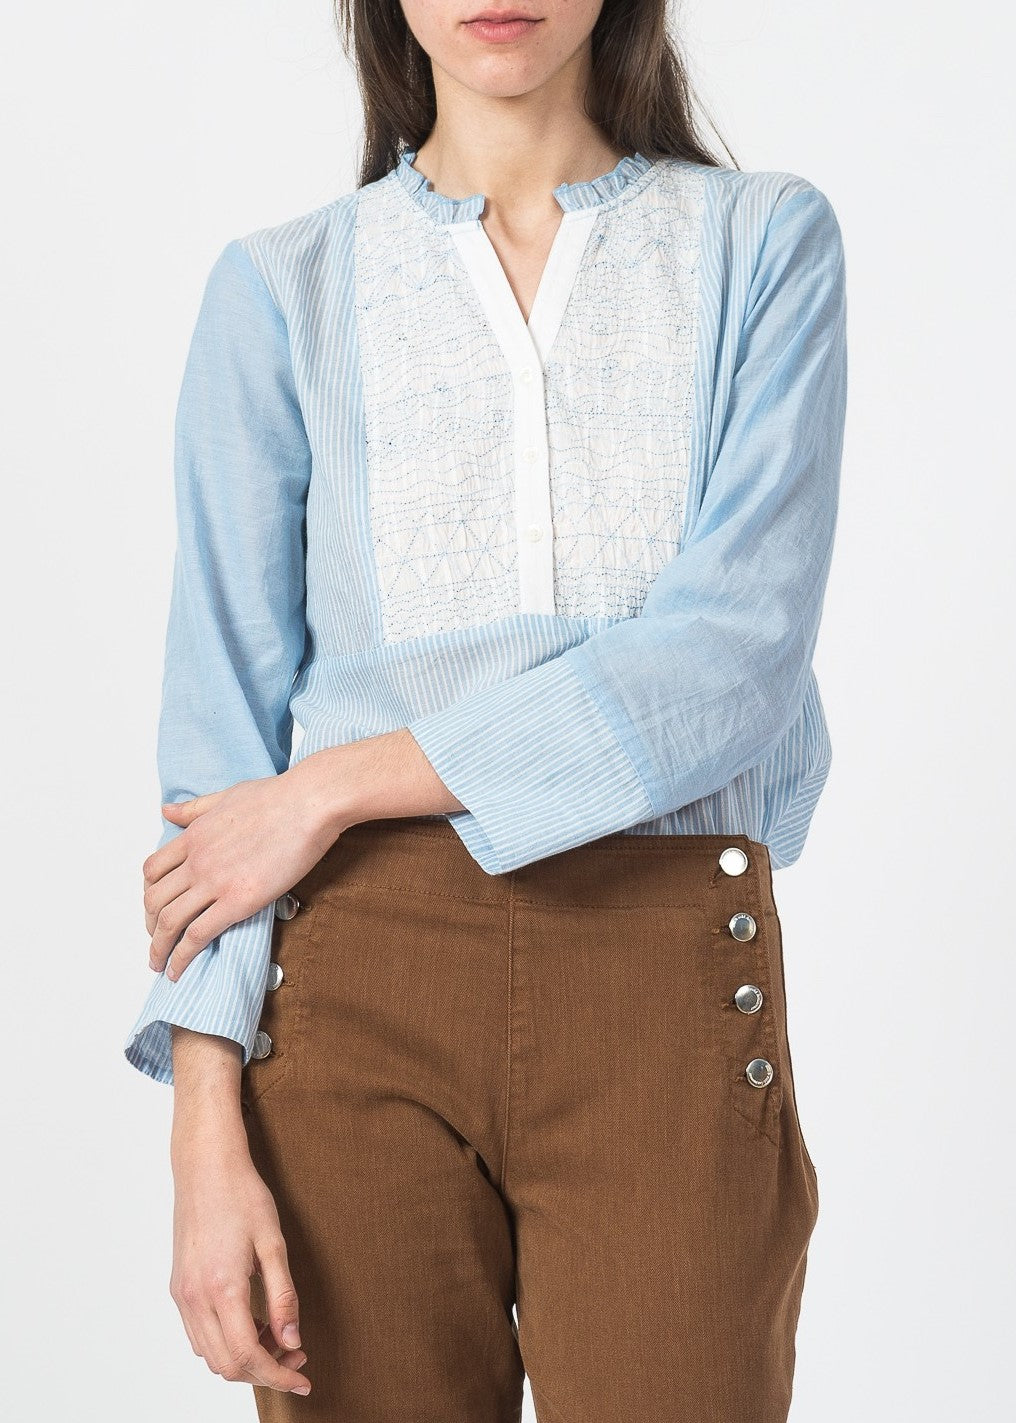 Indi & Cold stripe blouse blue